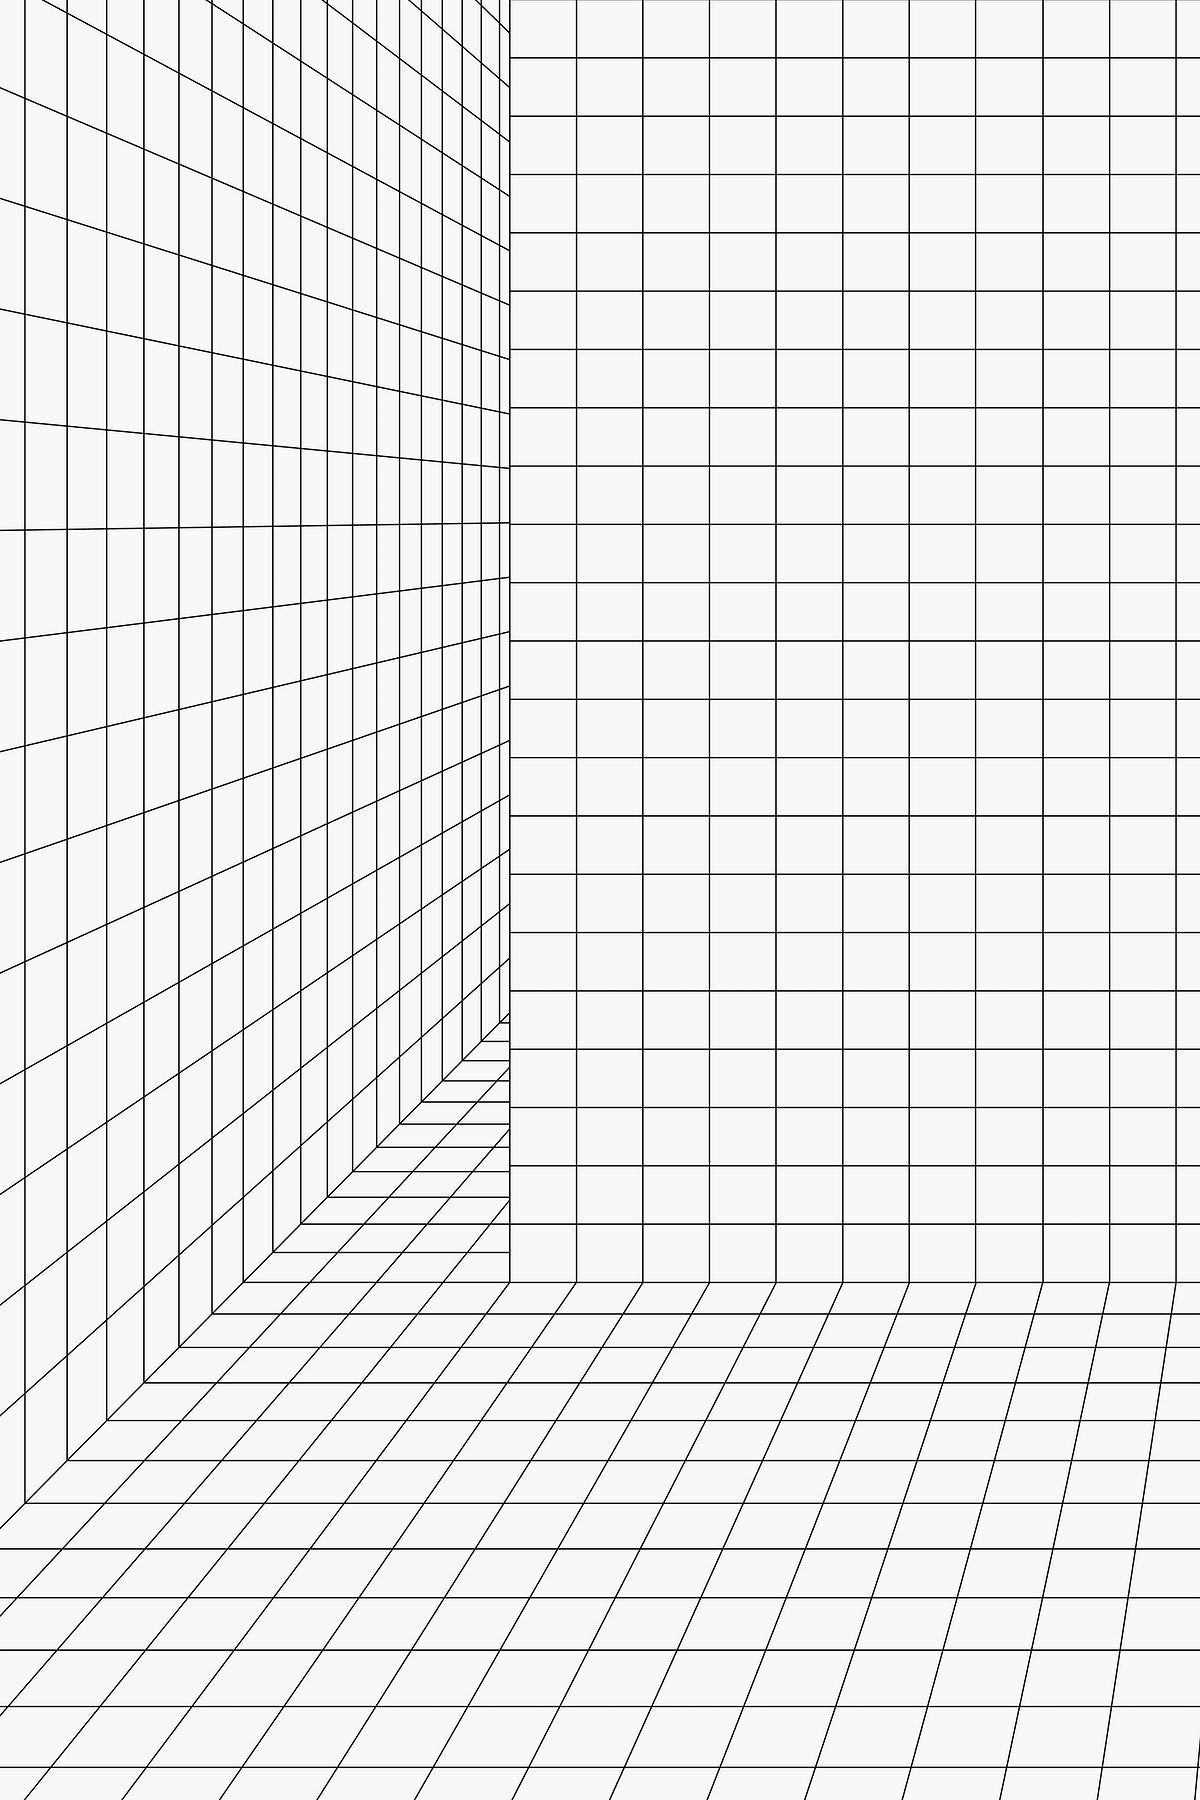 3d Grid Wireframe Grid Room Background Design Element Free Image By Rawpixel Com Aew In 2021 Background Design Cute Galaxy Wallpaper Design Element